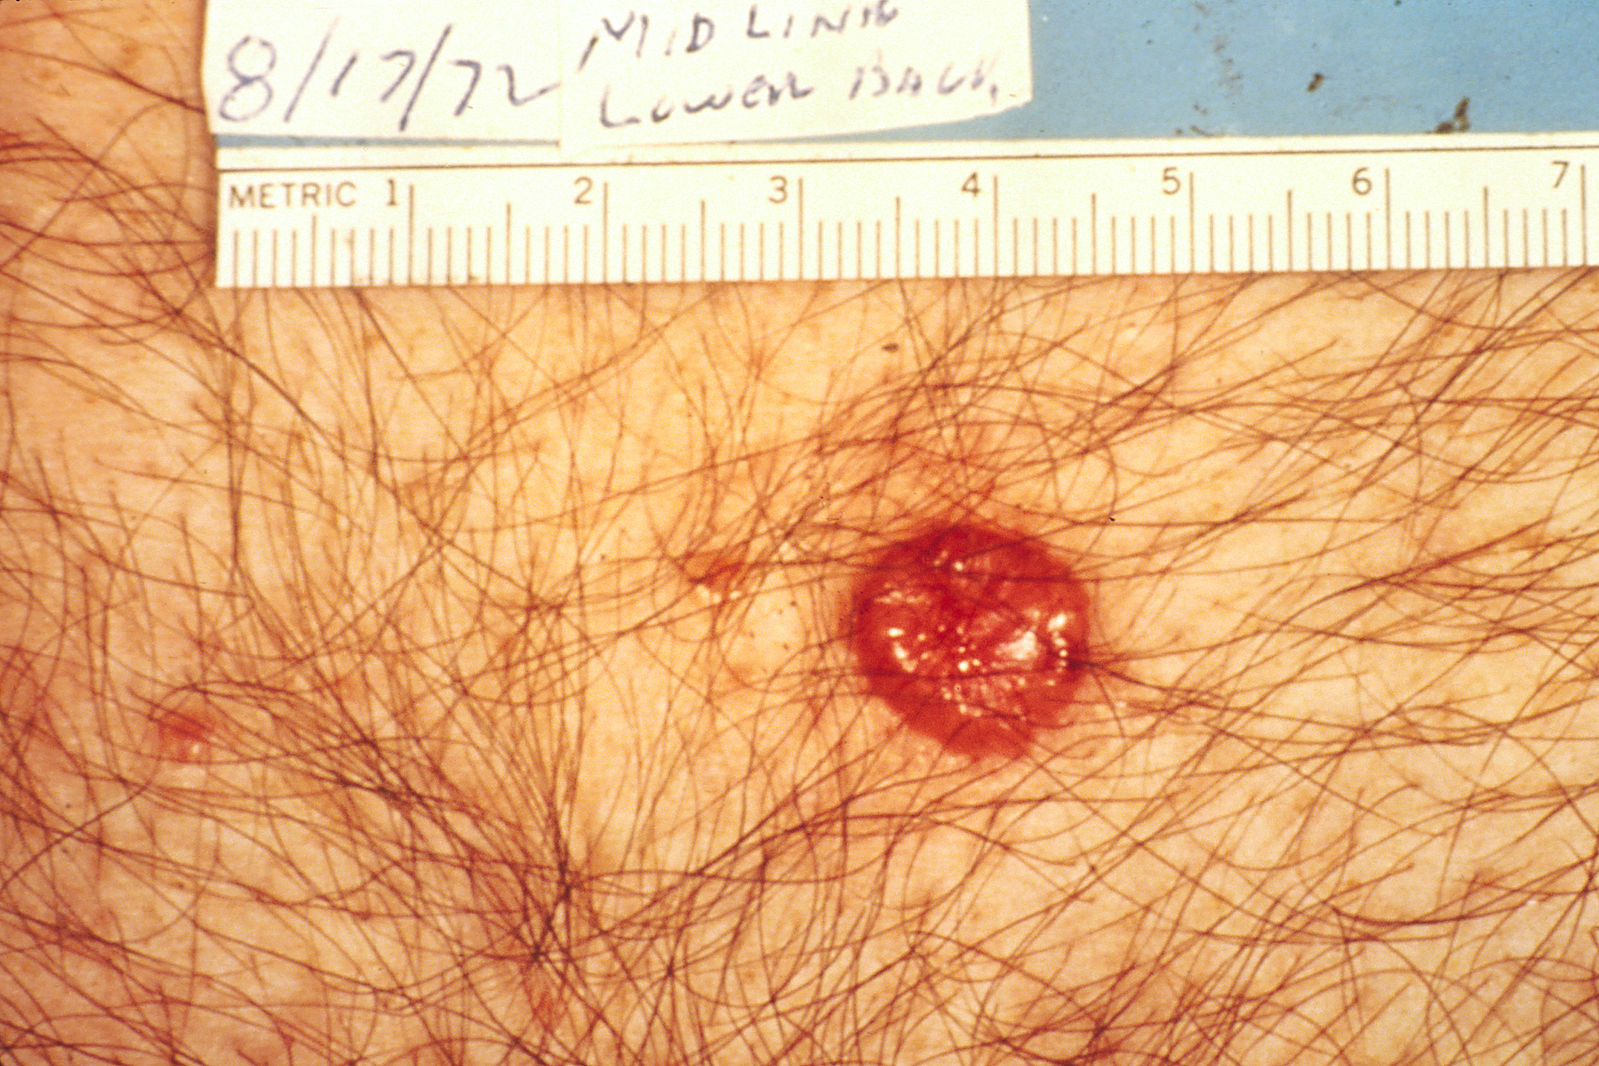 Difference Between Follicular Adenoma and Carcinoma